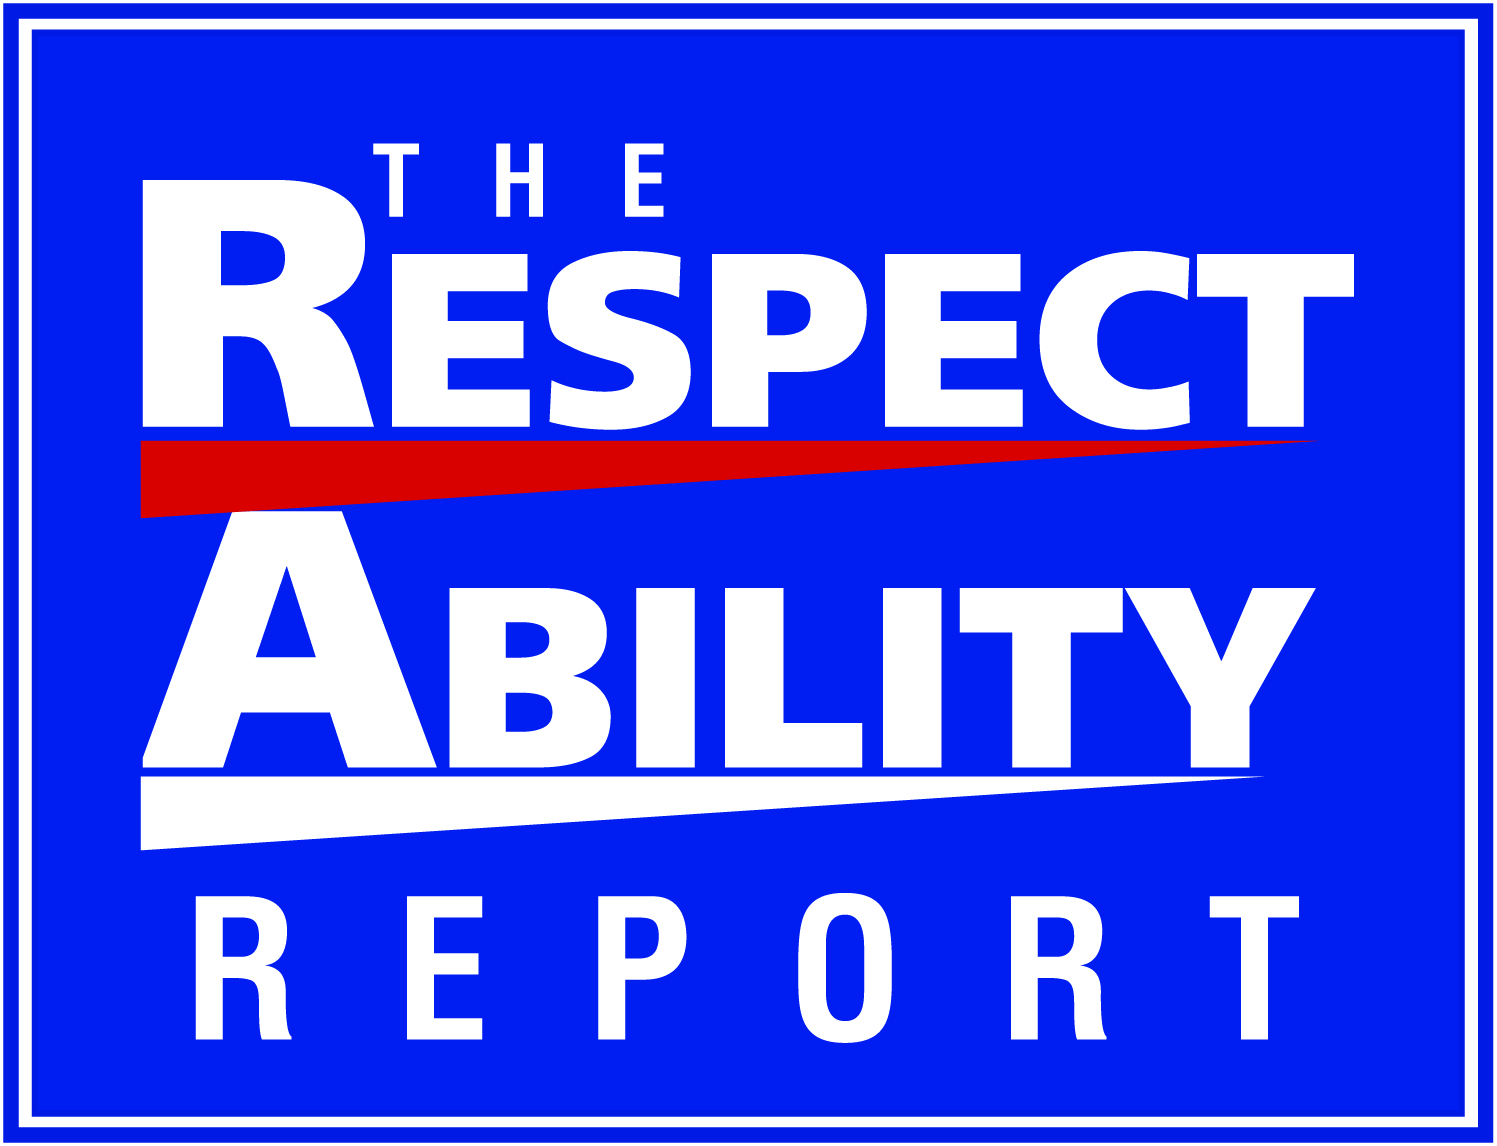 The RespectAbility Report